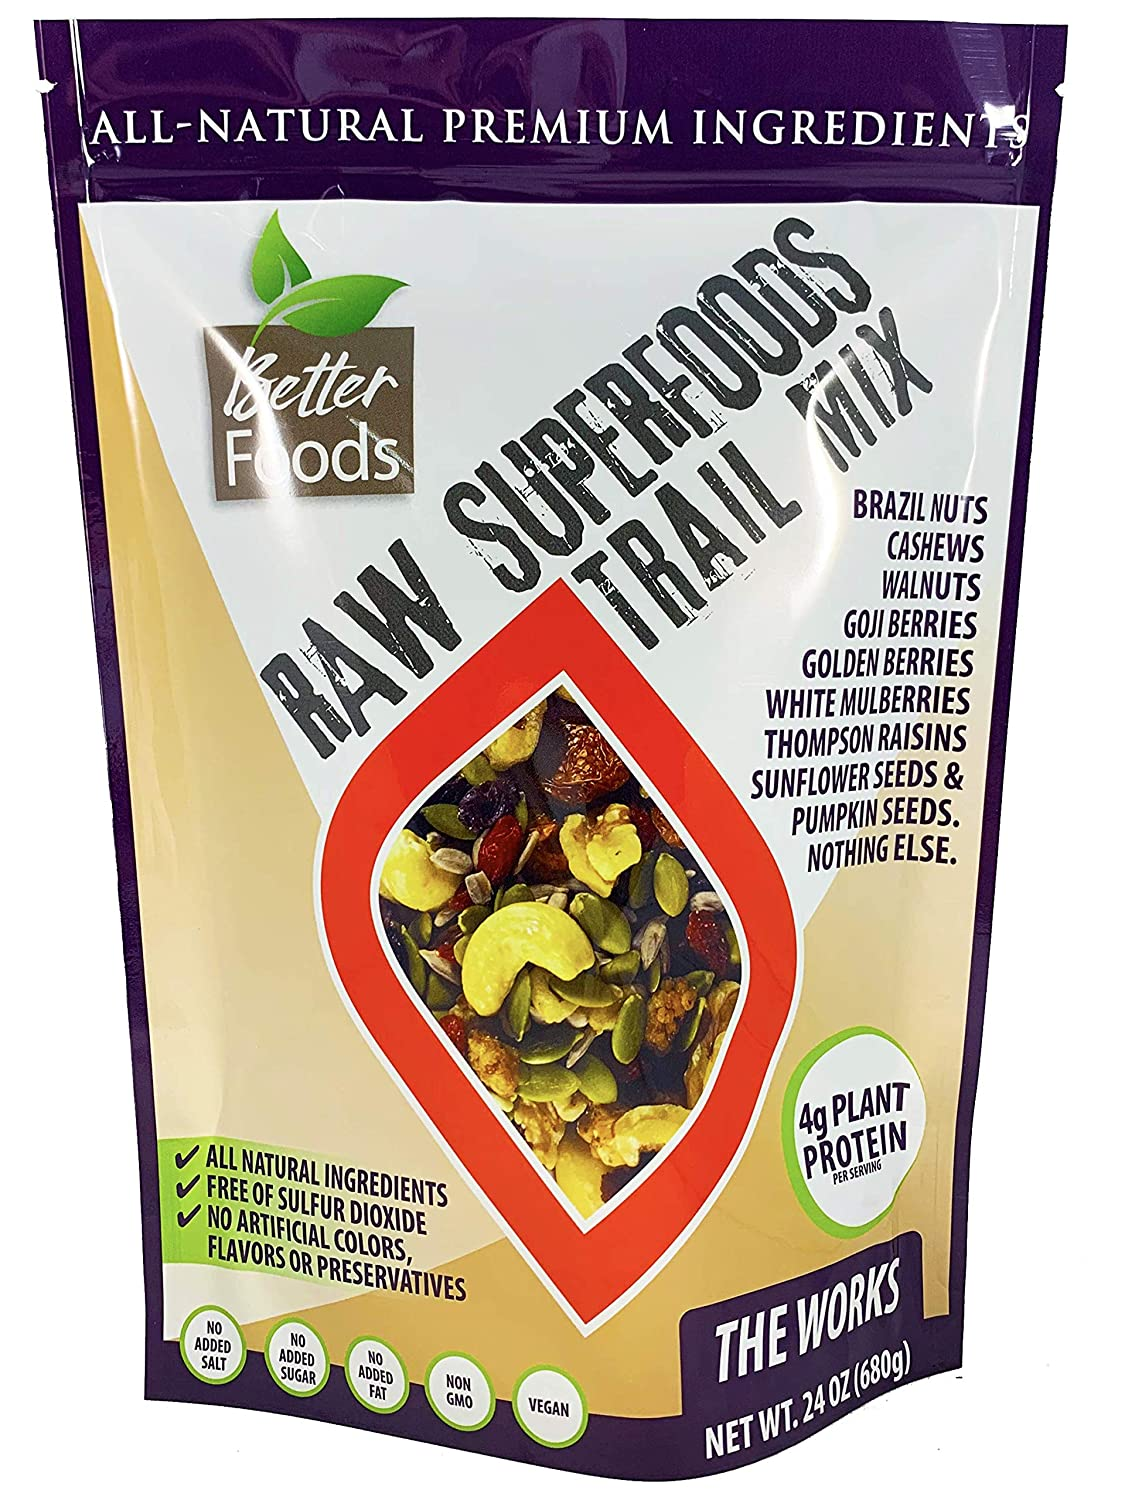 Raw Superfoods Trail Mix The Works Goji Berries Golden Berries